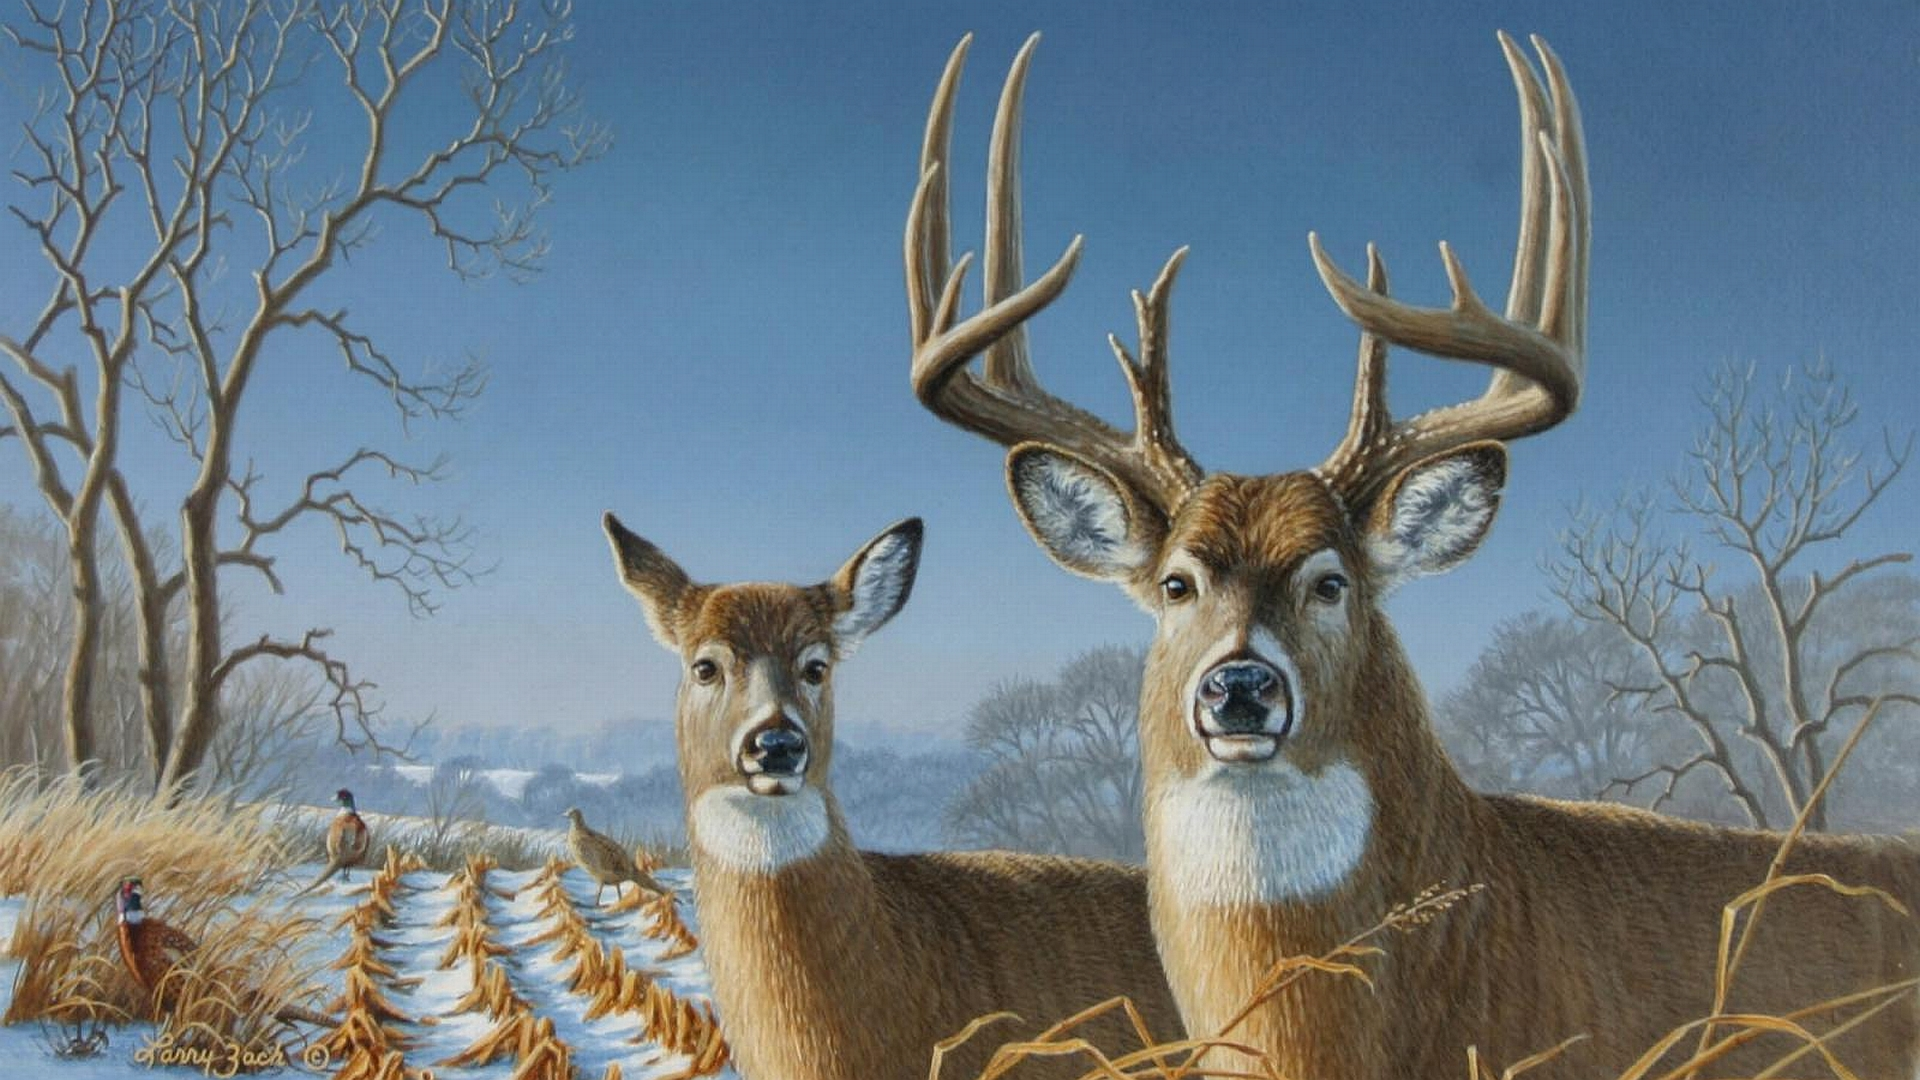 deer Wallpaper Background 3126 1920x1080